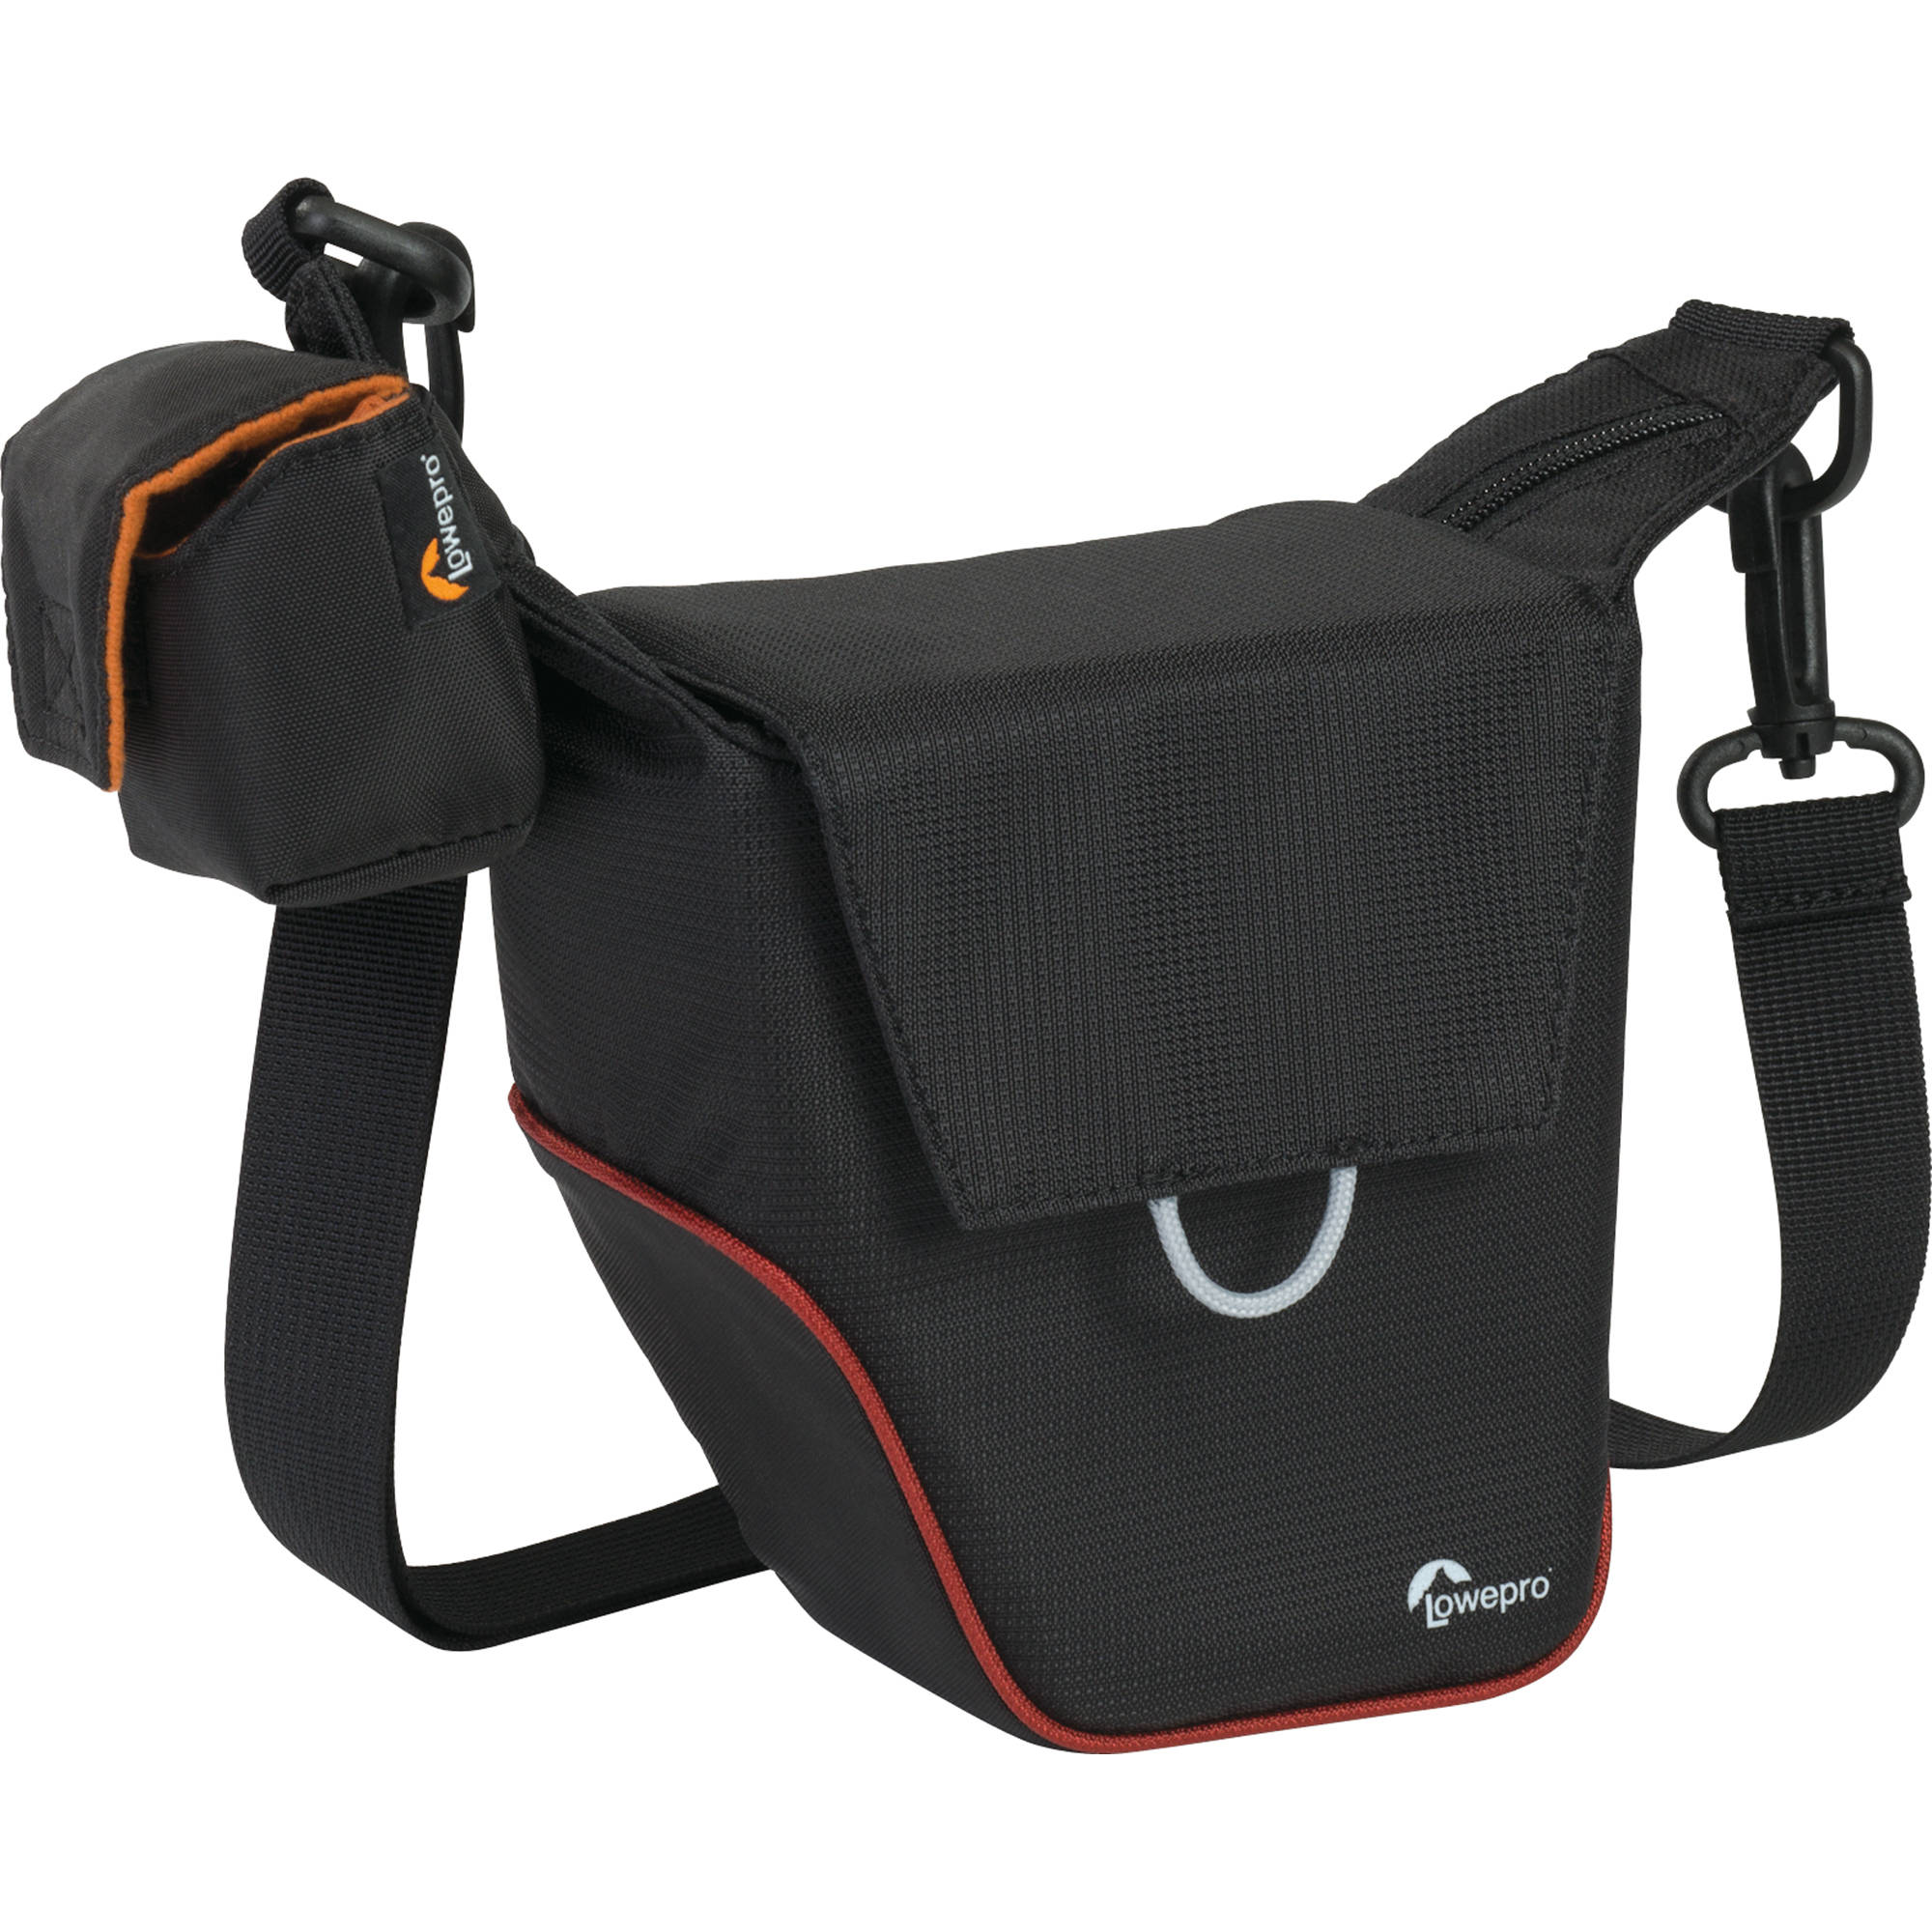 ffada8391e Lowepro Compact Courier 70 Shoulder Bag (Black with Red Piping)